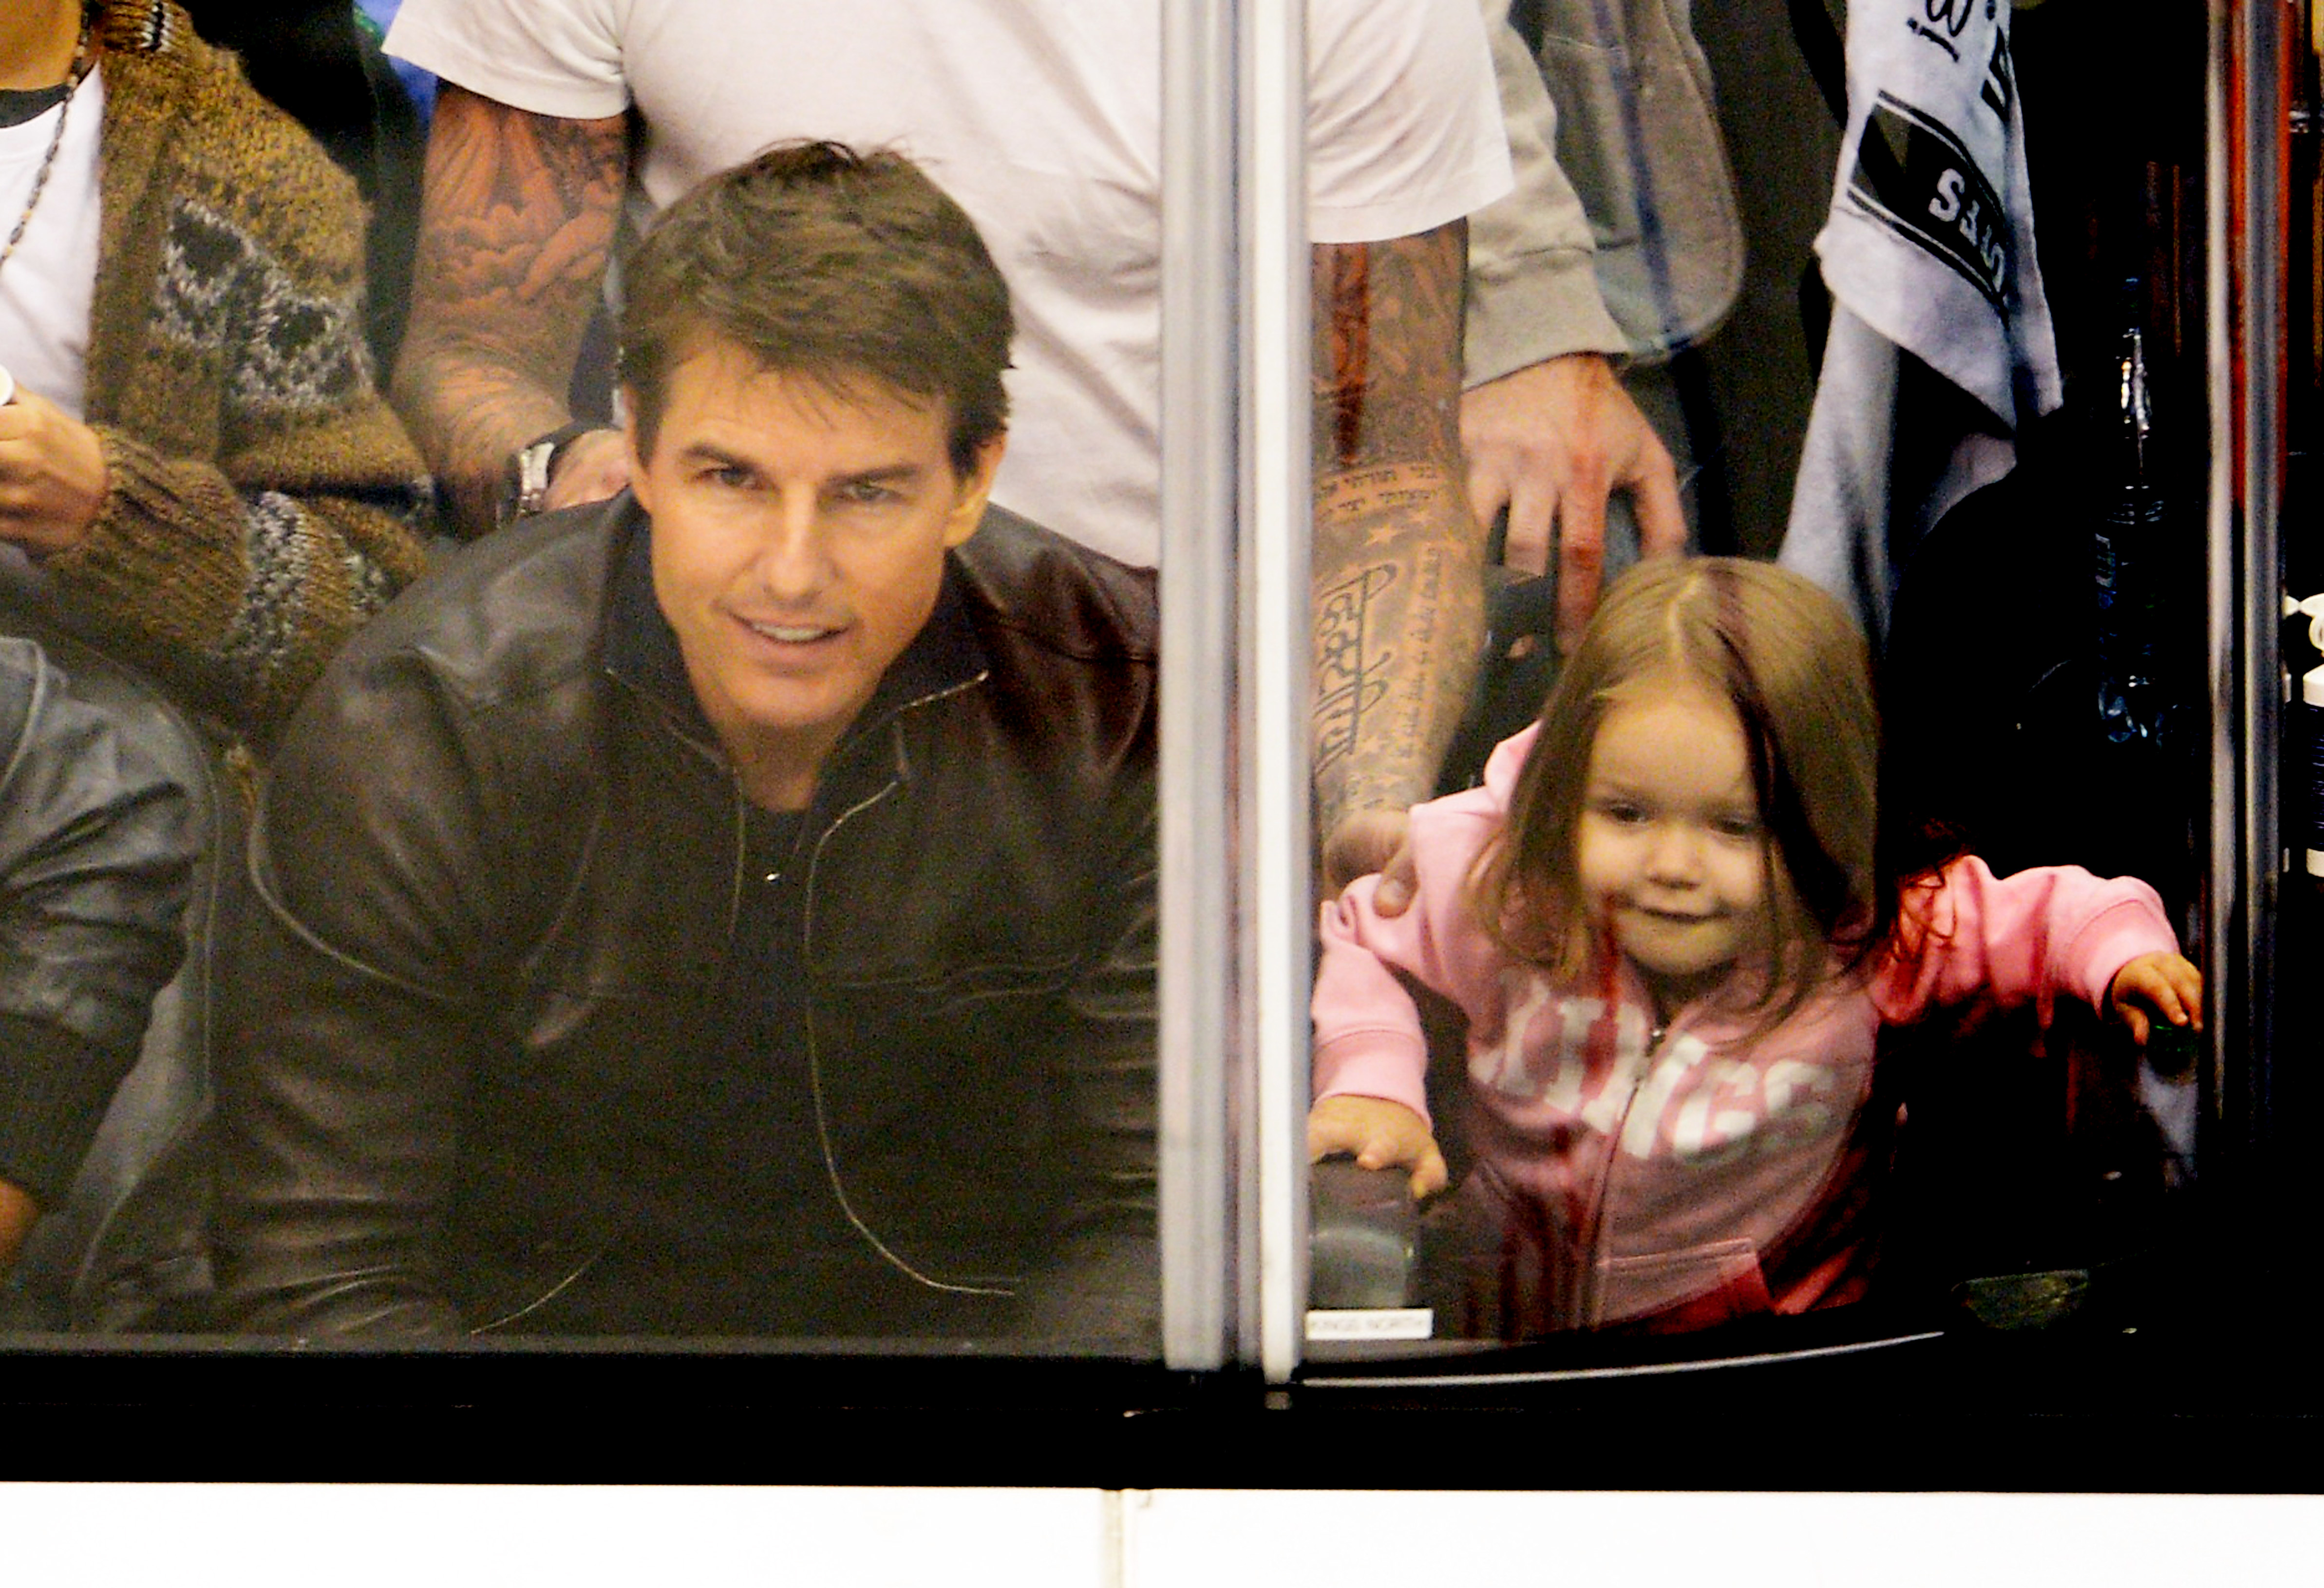 Tom Cruise and Katie Holmes one year after the split